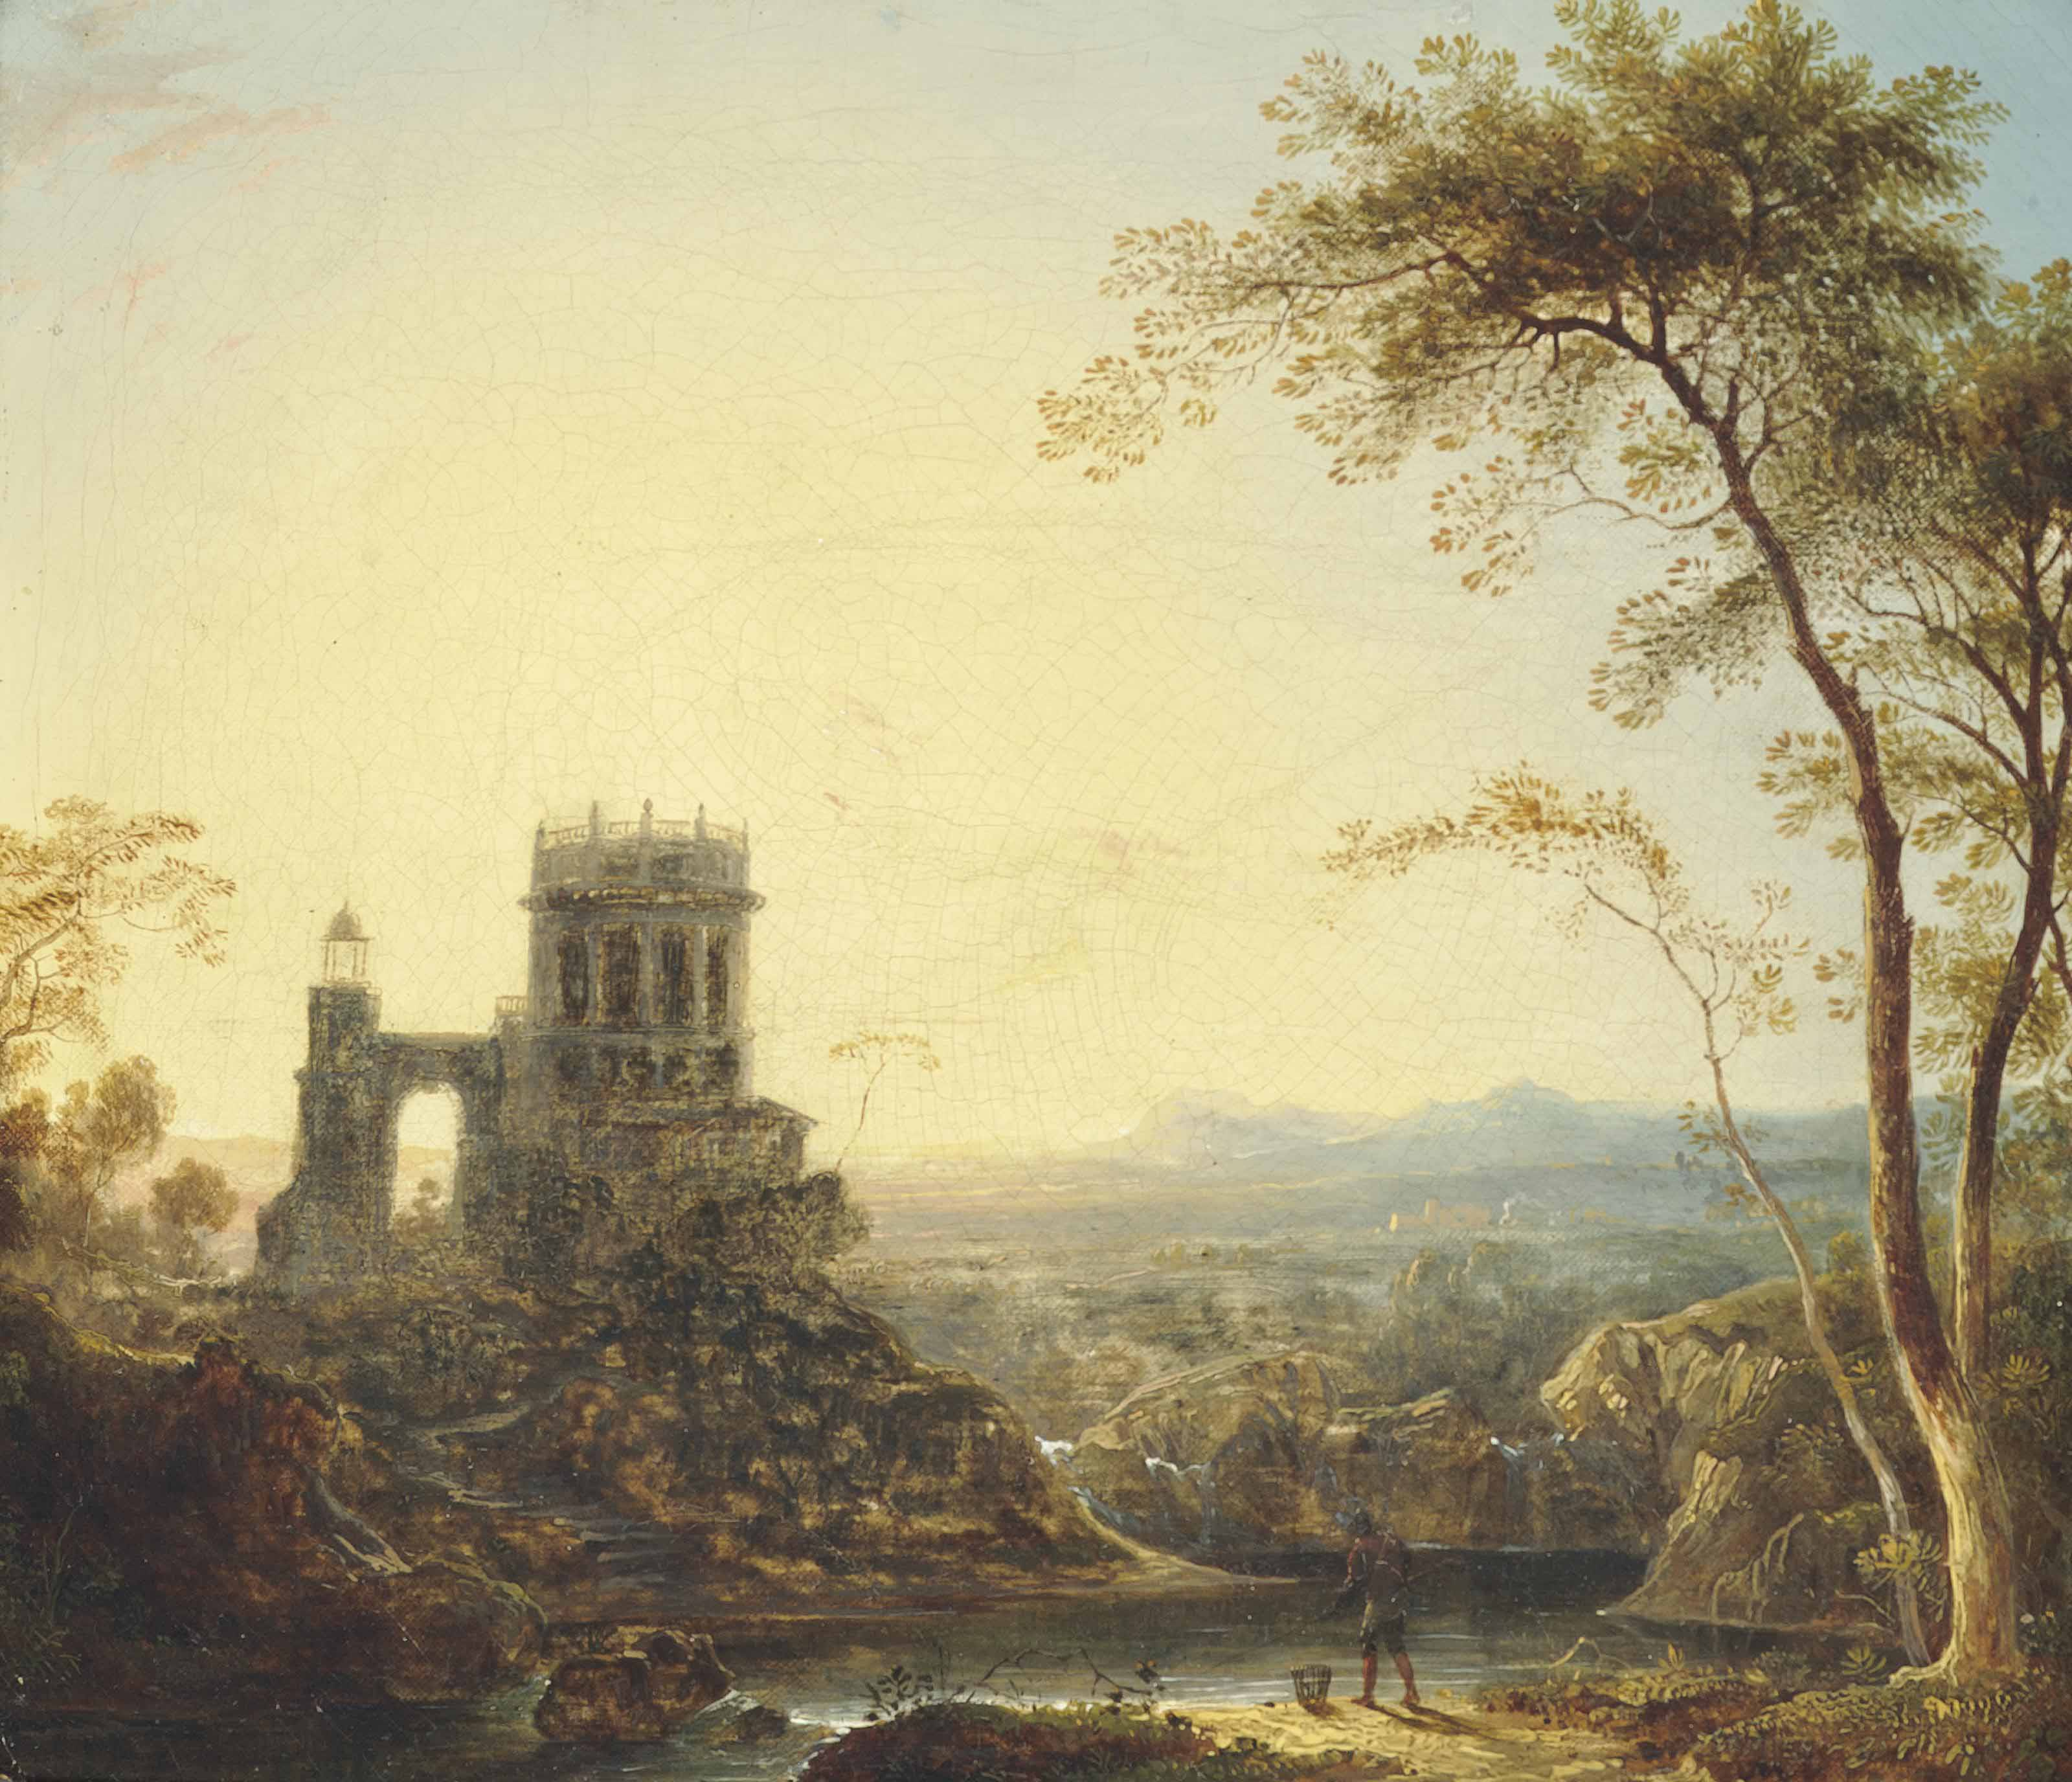 An extensive river landscape with a fisherman by the shore, before a tower